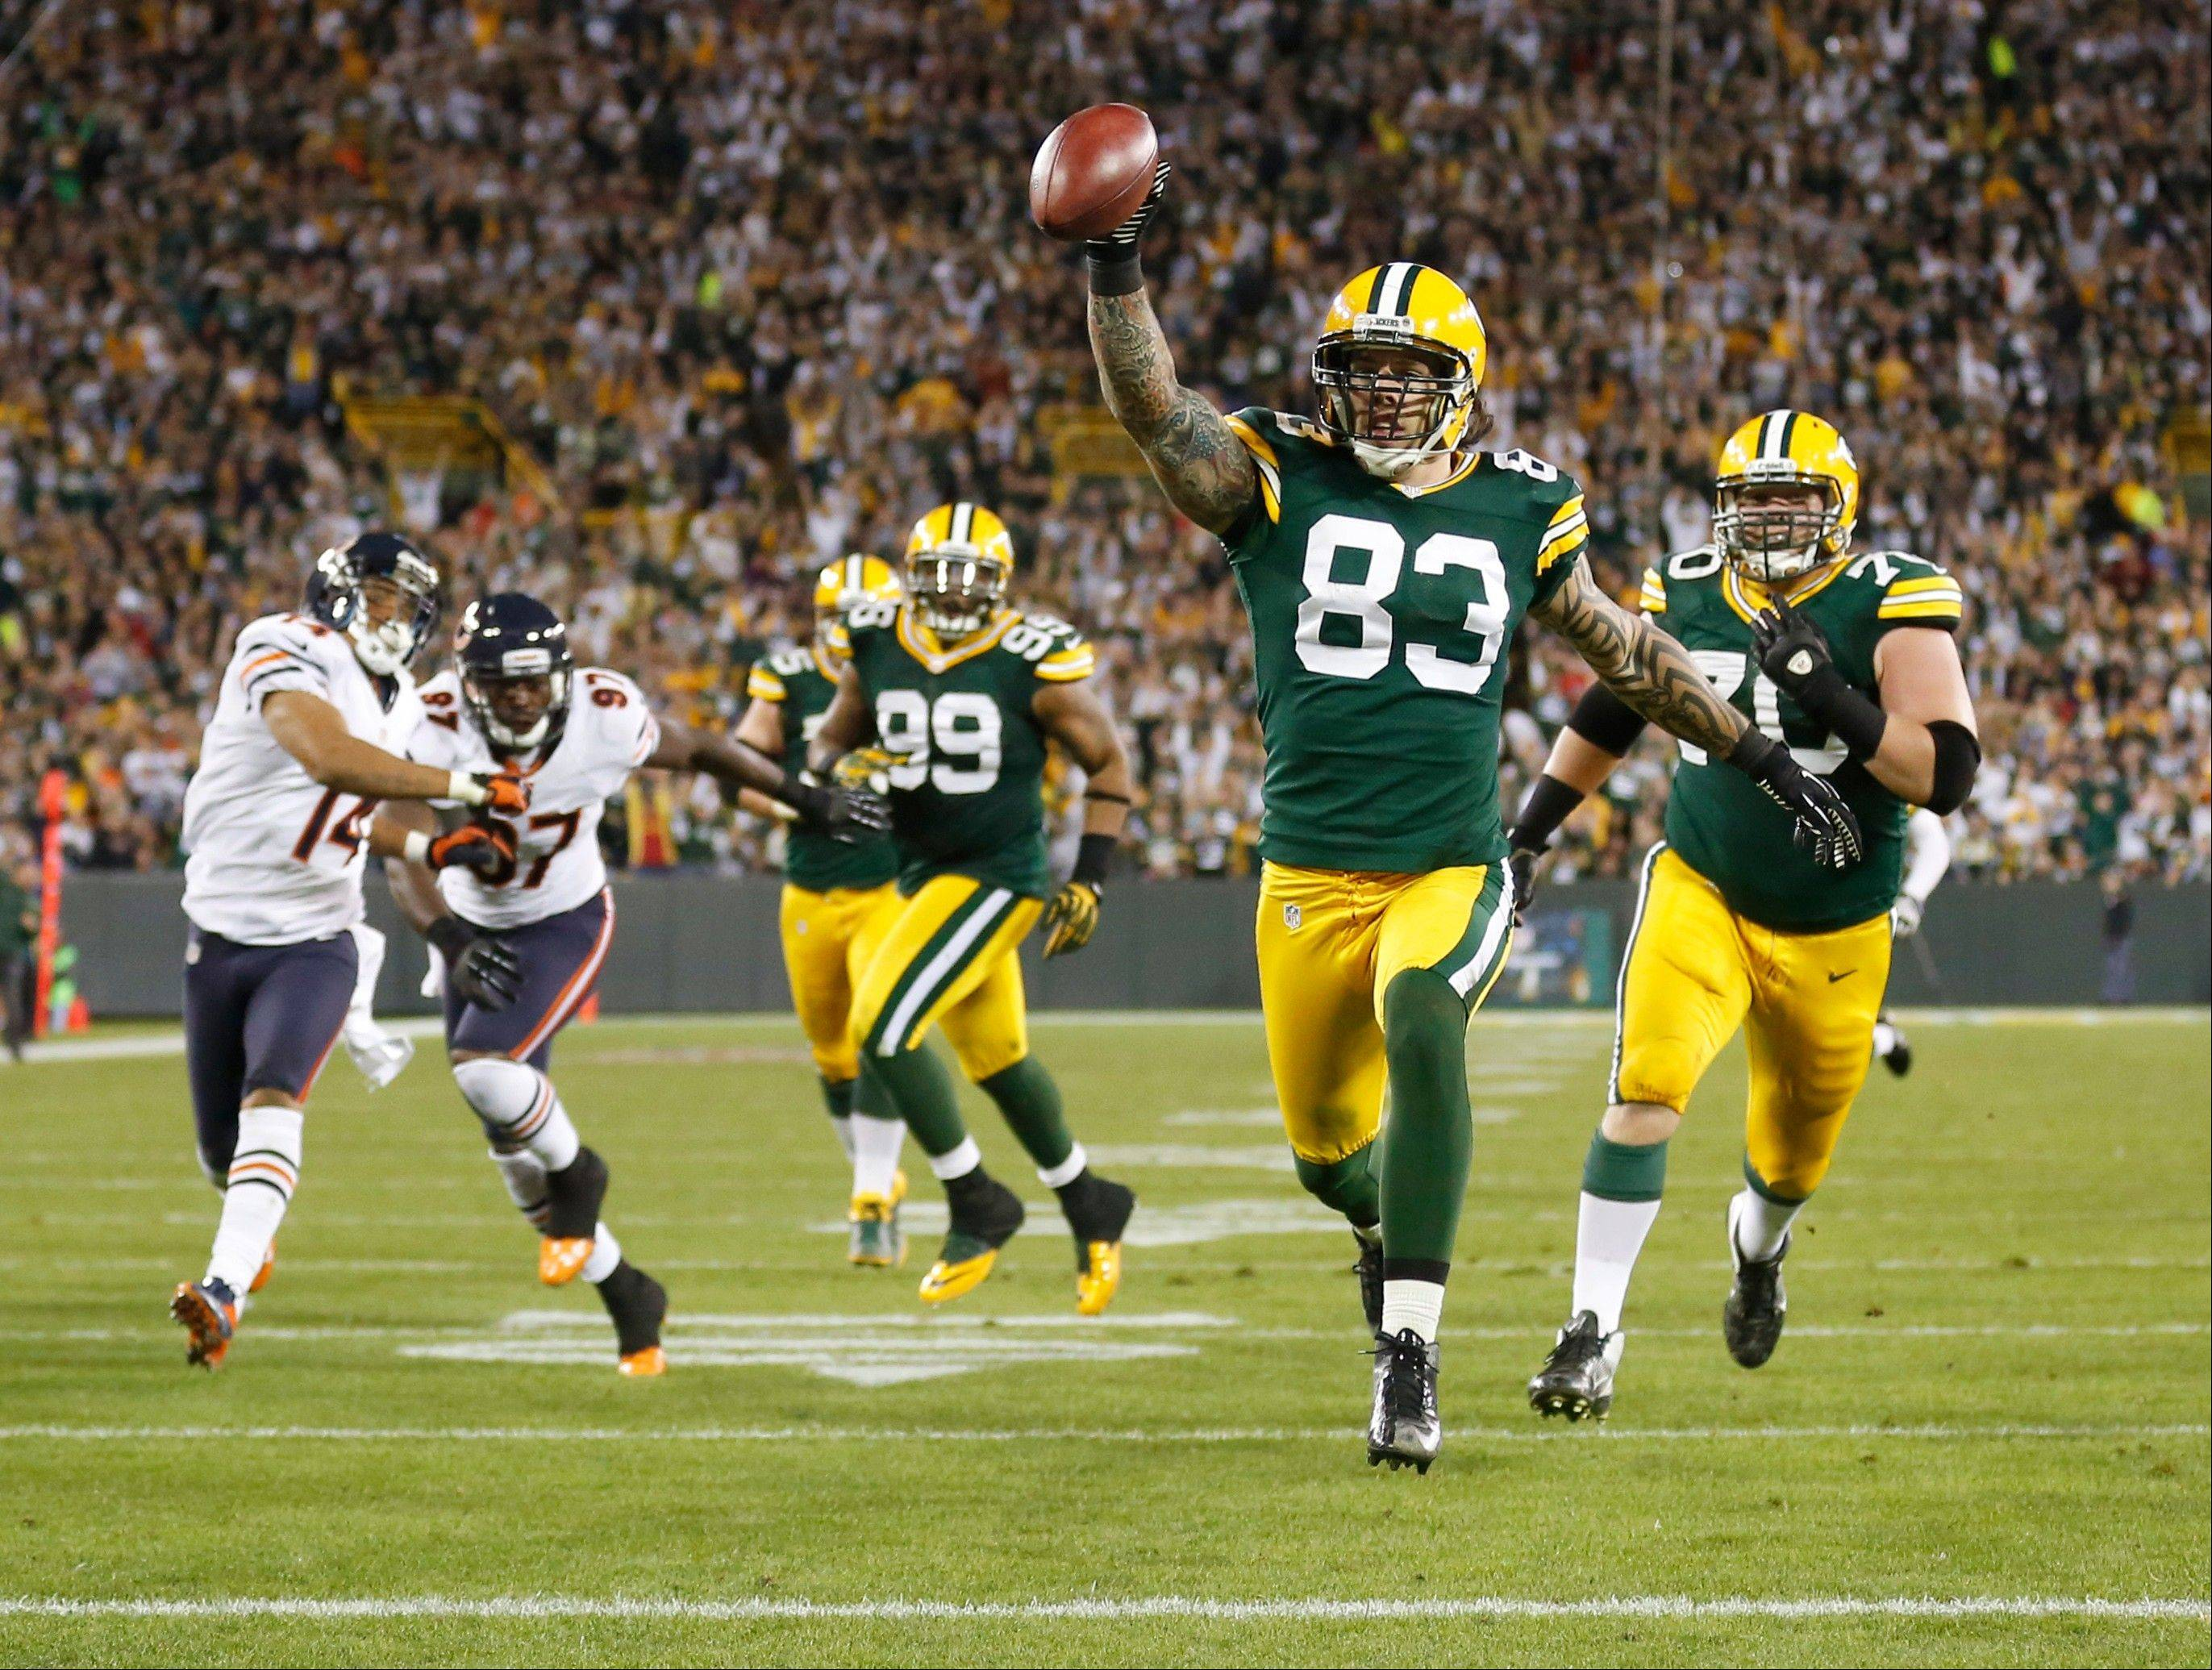 Green Bay Packers' Tom Crabtree (83) celebrates as he scores a touchdown on a pass from punter -- yes, the punter -- Tim Masthay during the first half against the Chicago Bears last night.